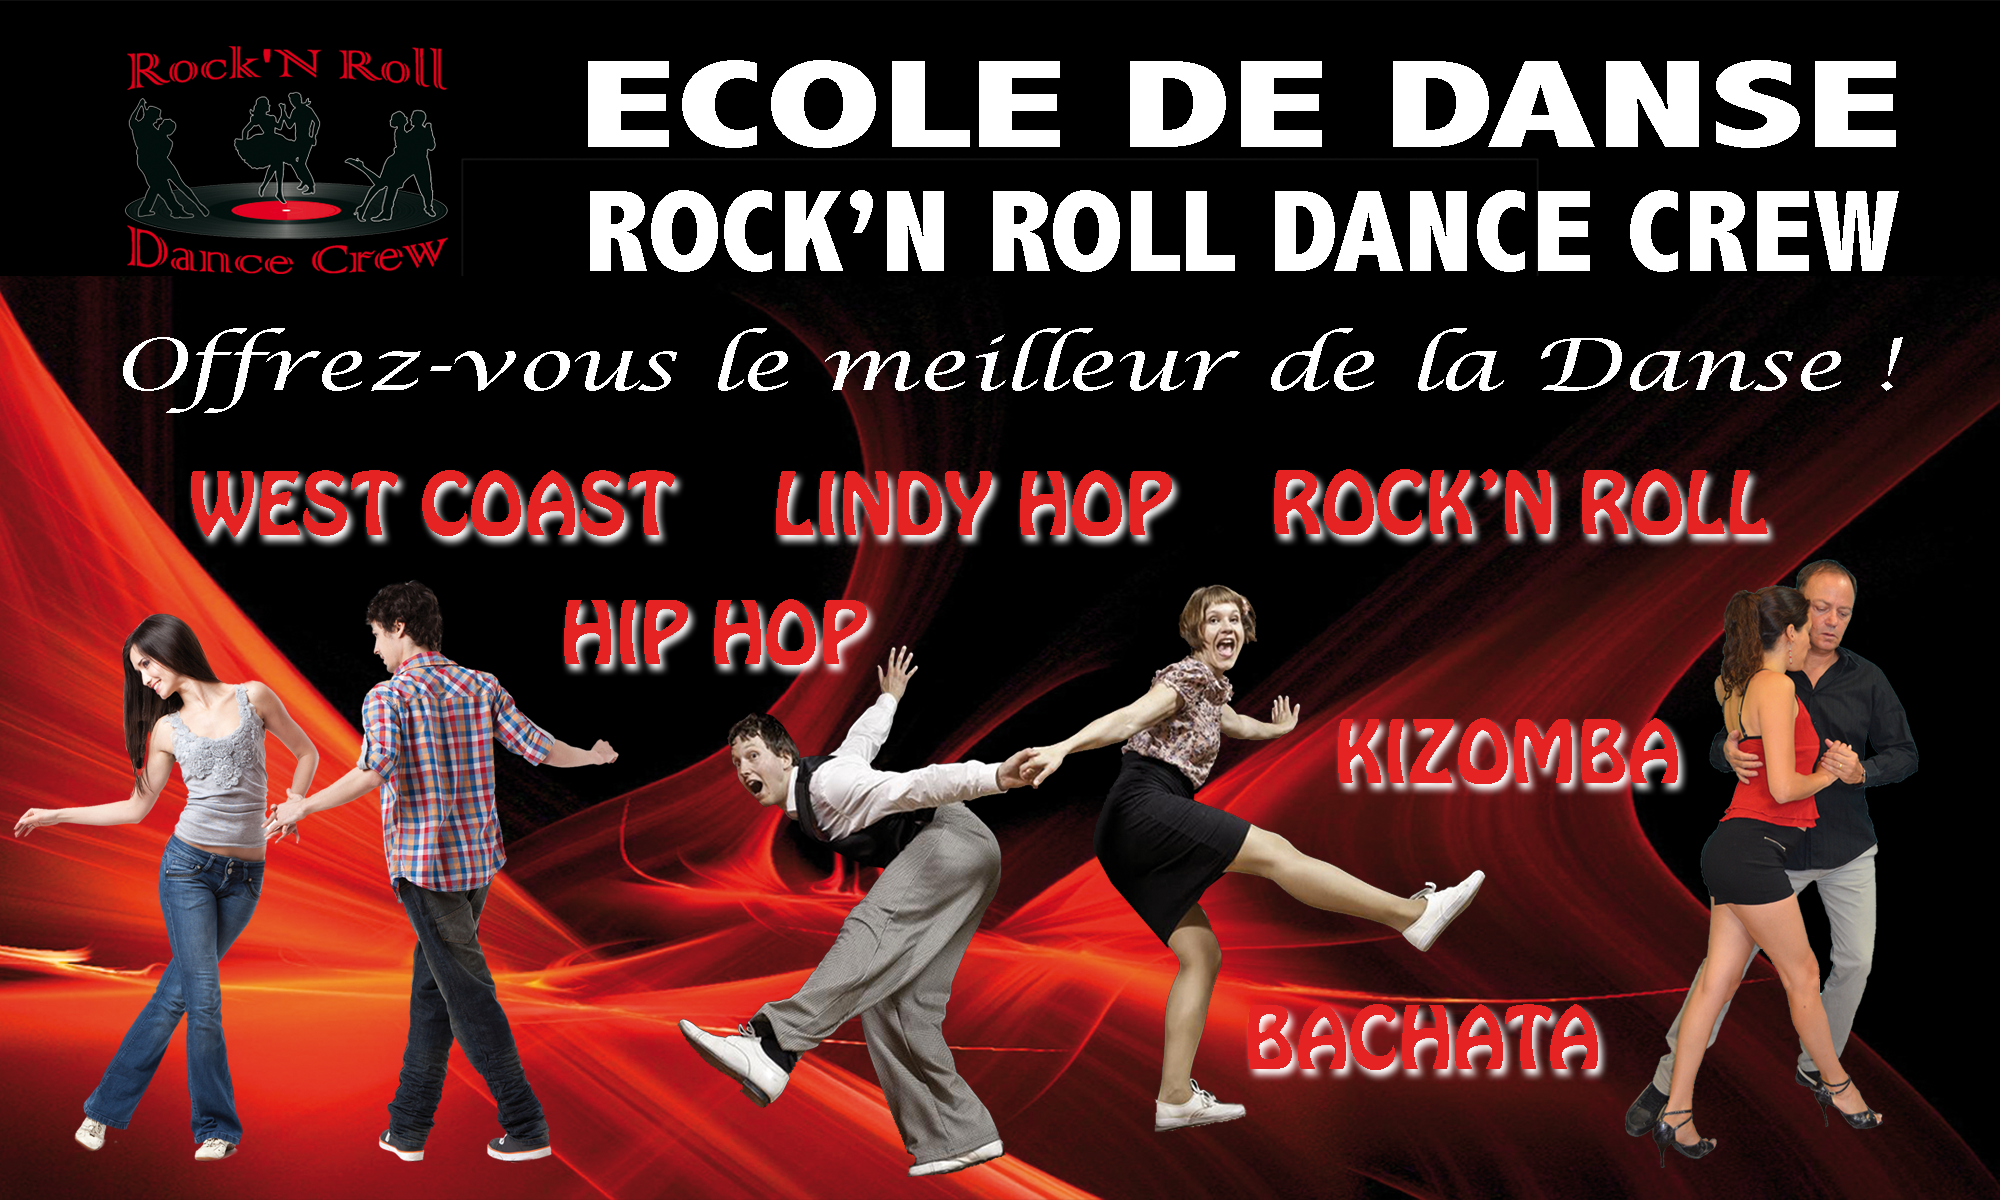 ROCK N ROLL DANCE CREW